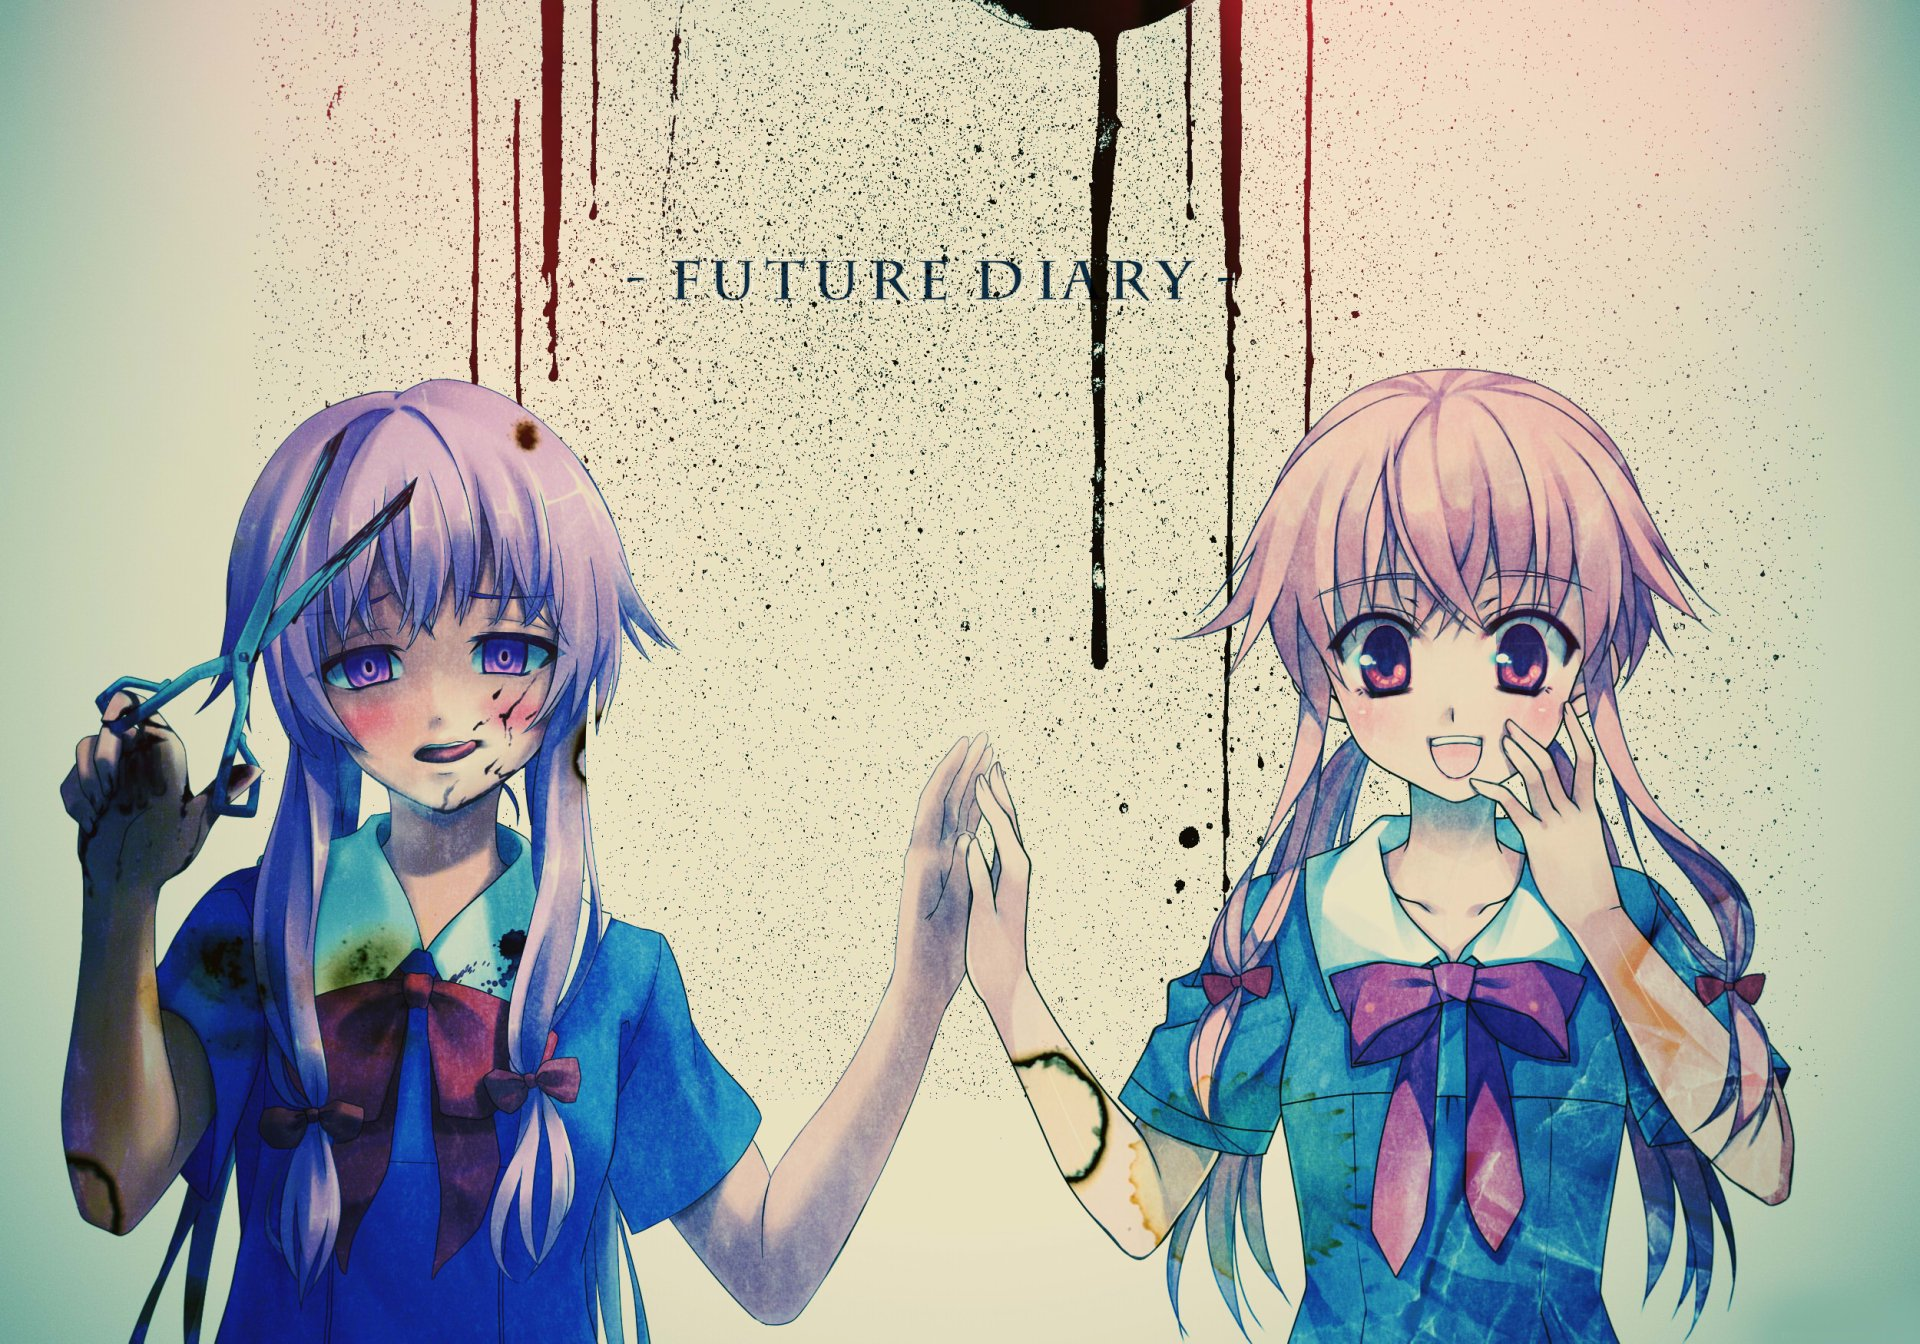 Anime - Mirai Nikki  Anime Yuno Gasai Future Diary Pink Hair Yandere Blood Girl School Uniform Wallpaper